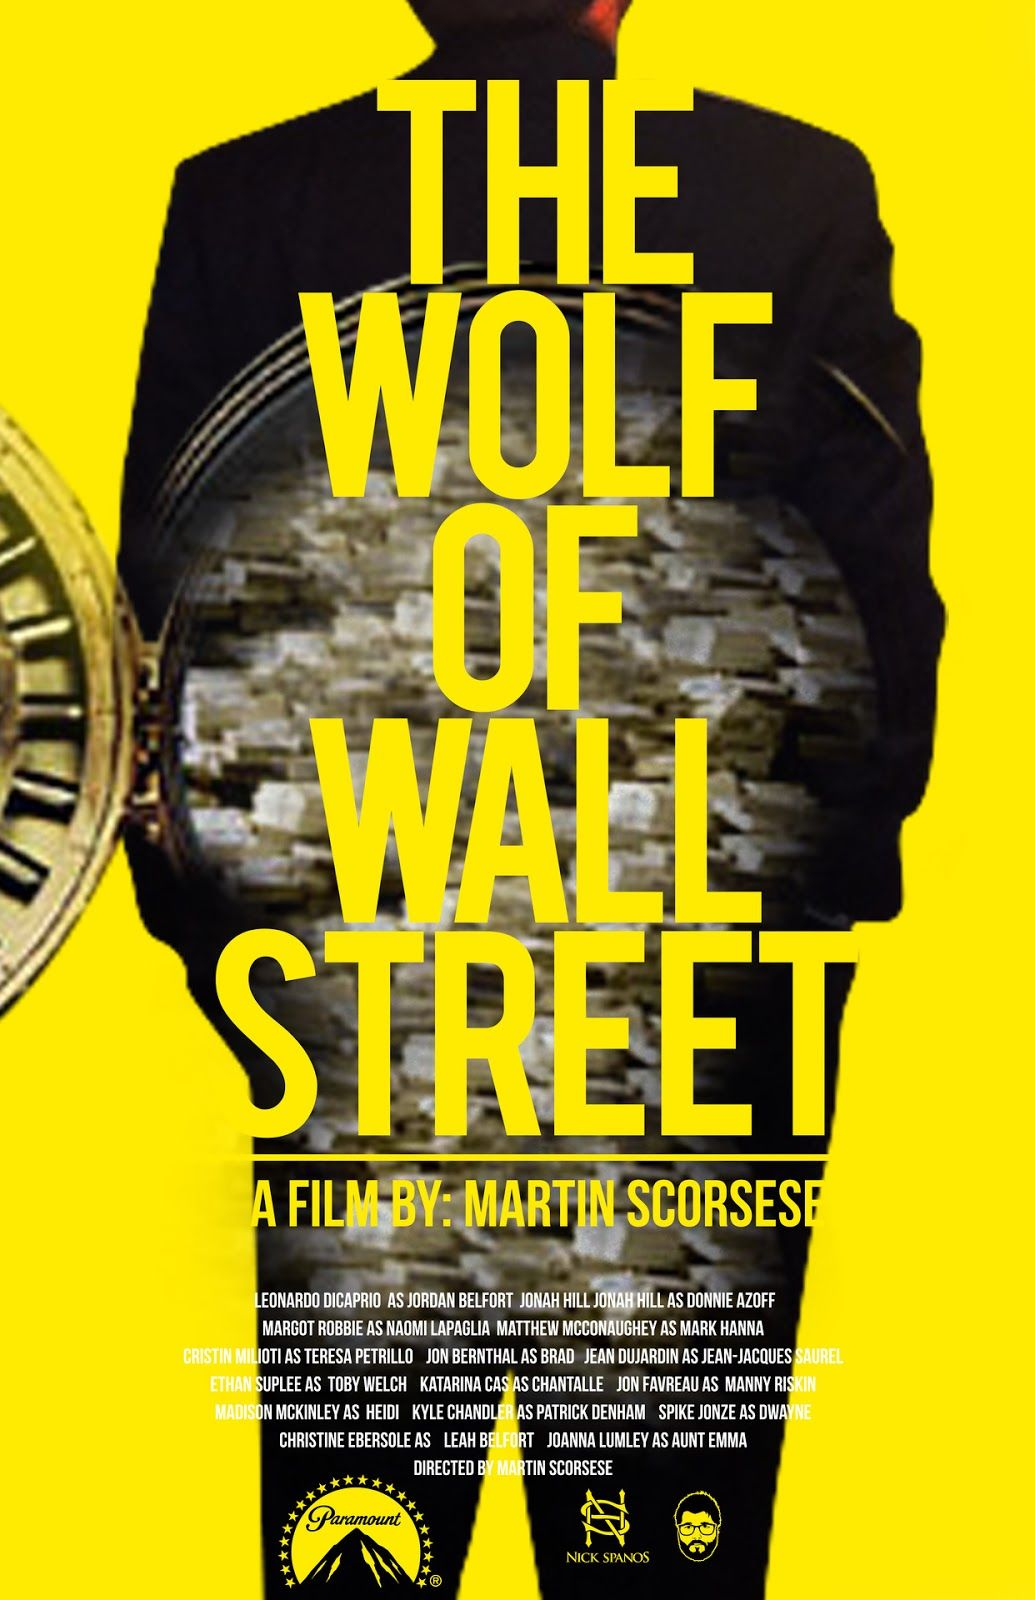 The Wolf of Wall Street, Scorsese's film wallpaper